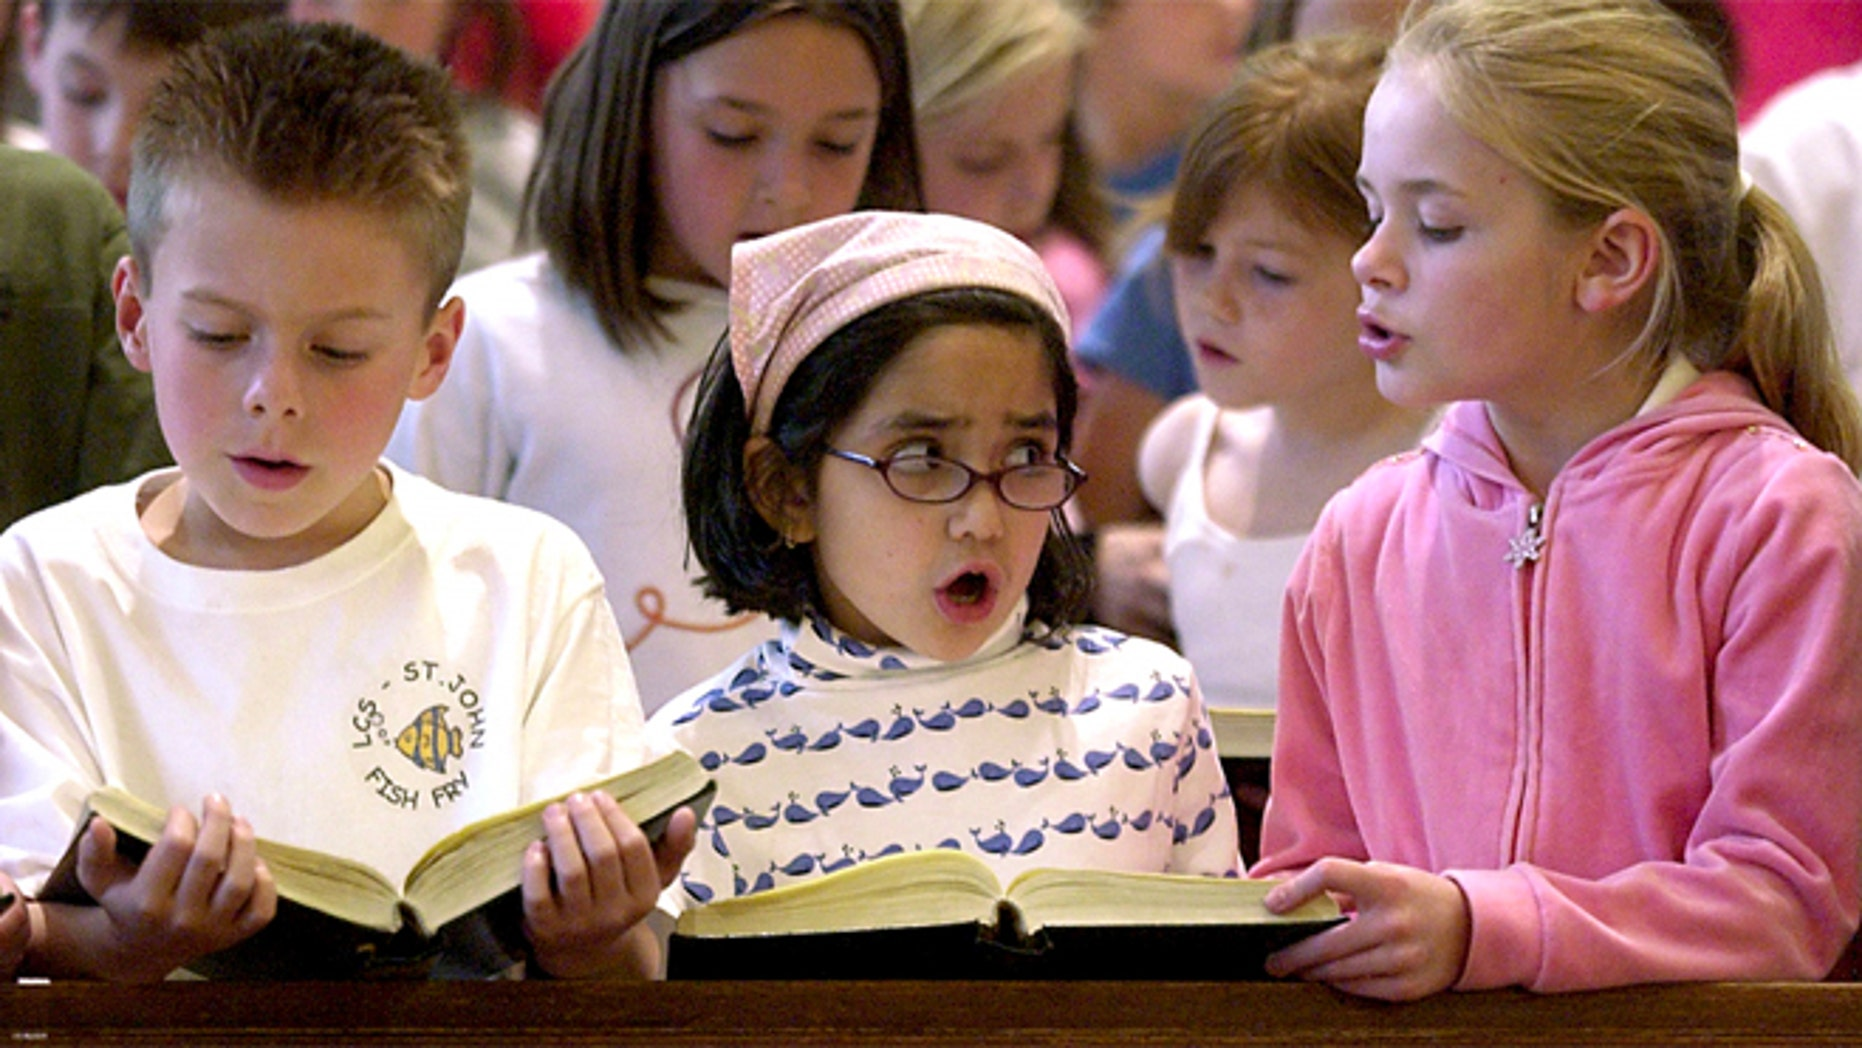 FILE: Catholic school students in Kansas sing at a prayer service.